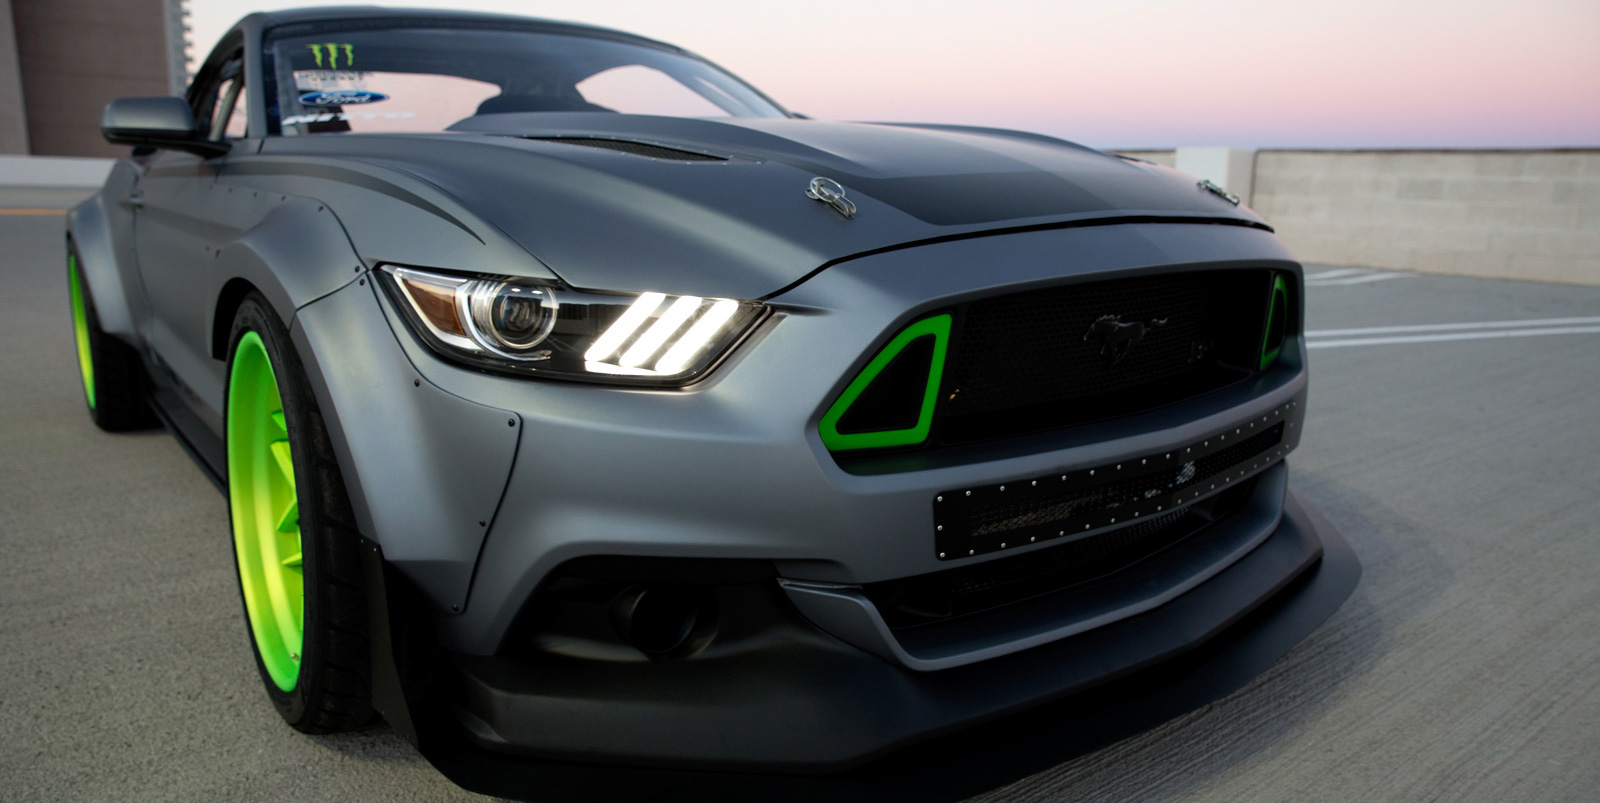 PASMAG Feature Feb-Mar 2015 Vaughn Gittin Jr Ford Mustang Spec 5 Concept HRE front close